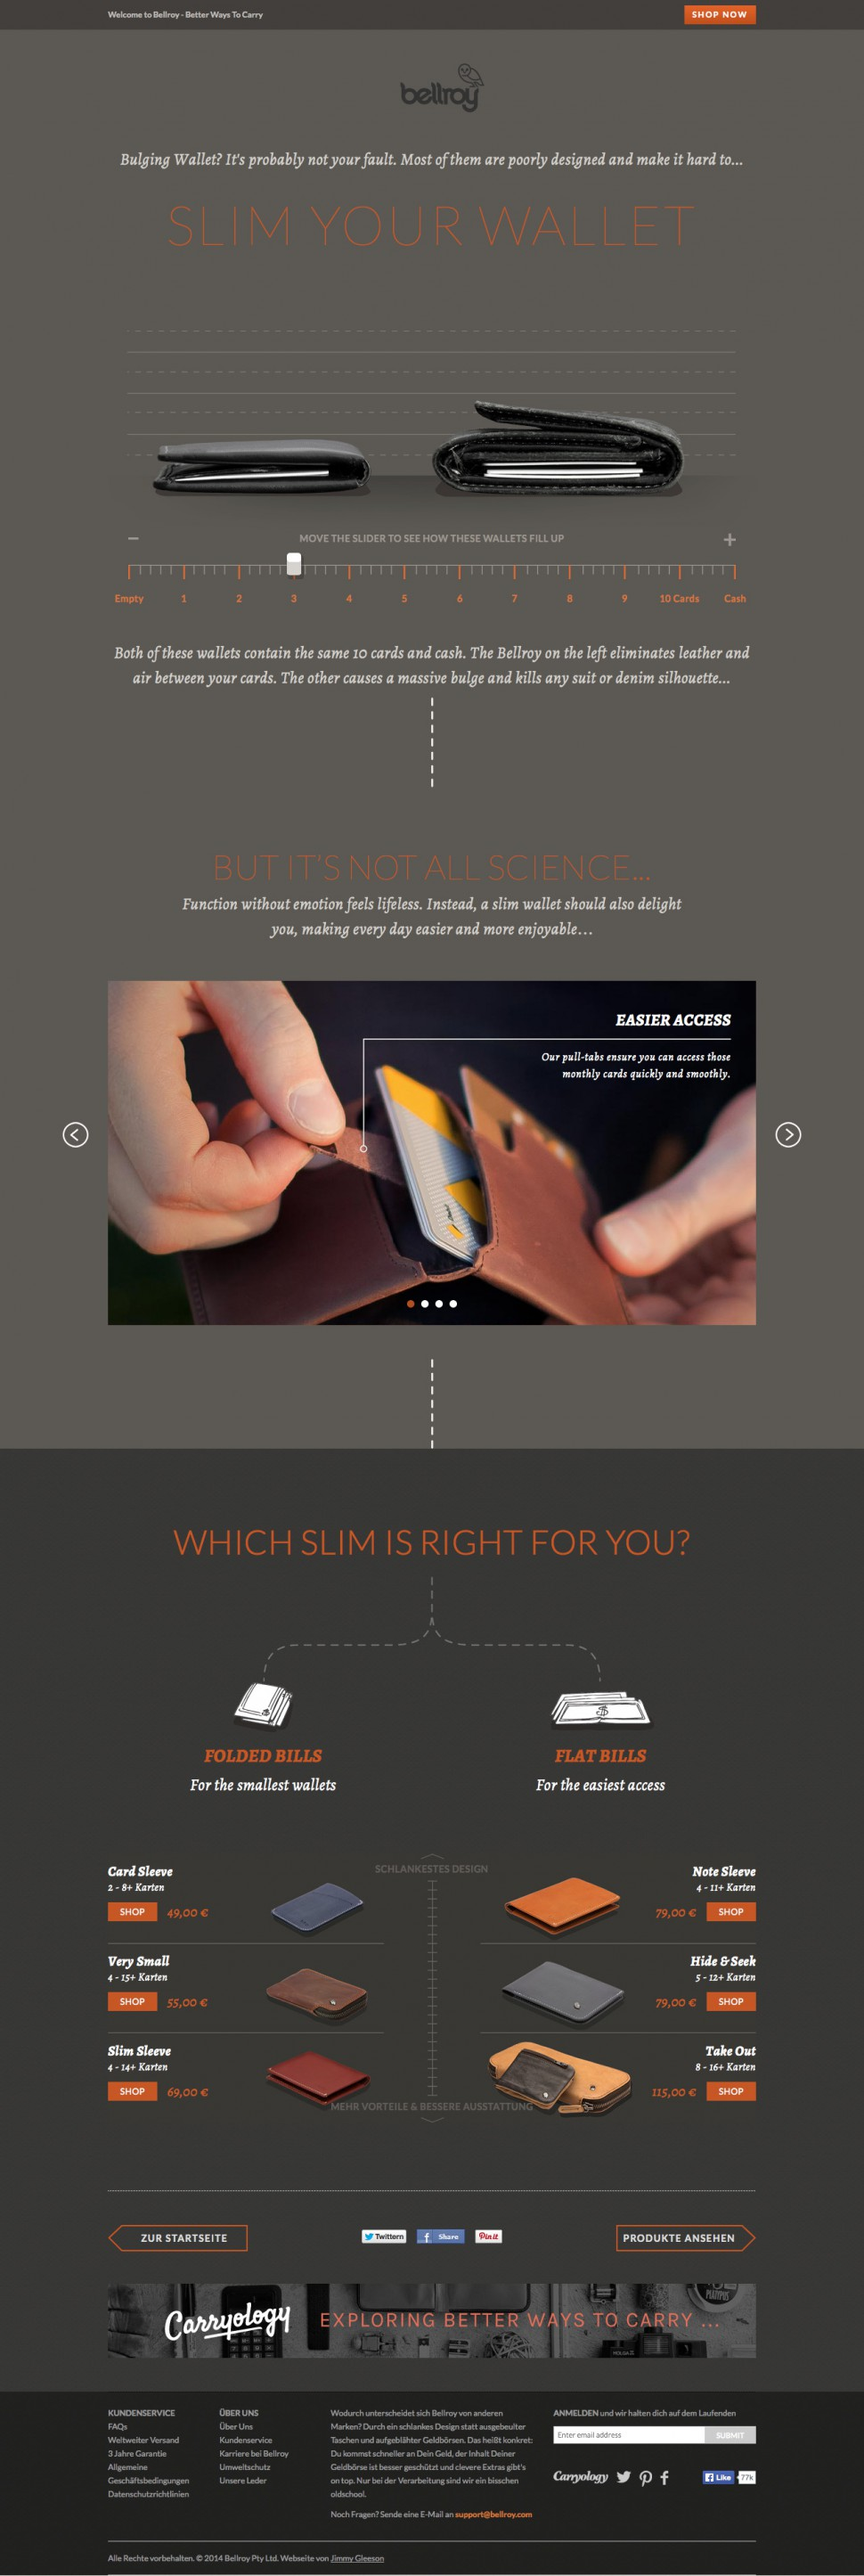 Bellroy - Slim your wallet - landingpage